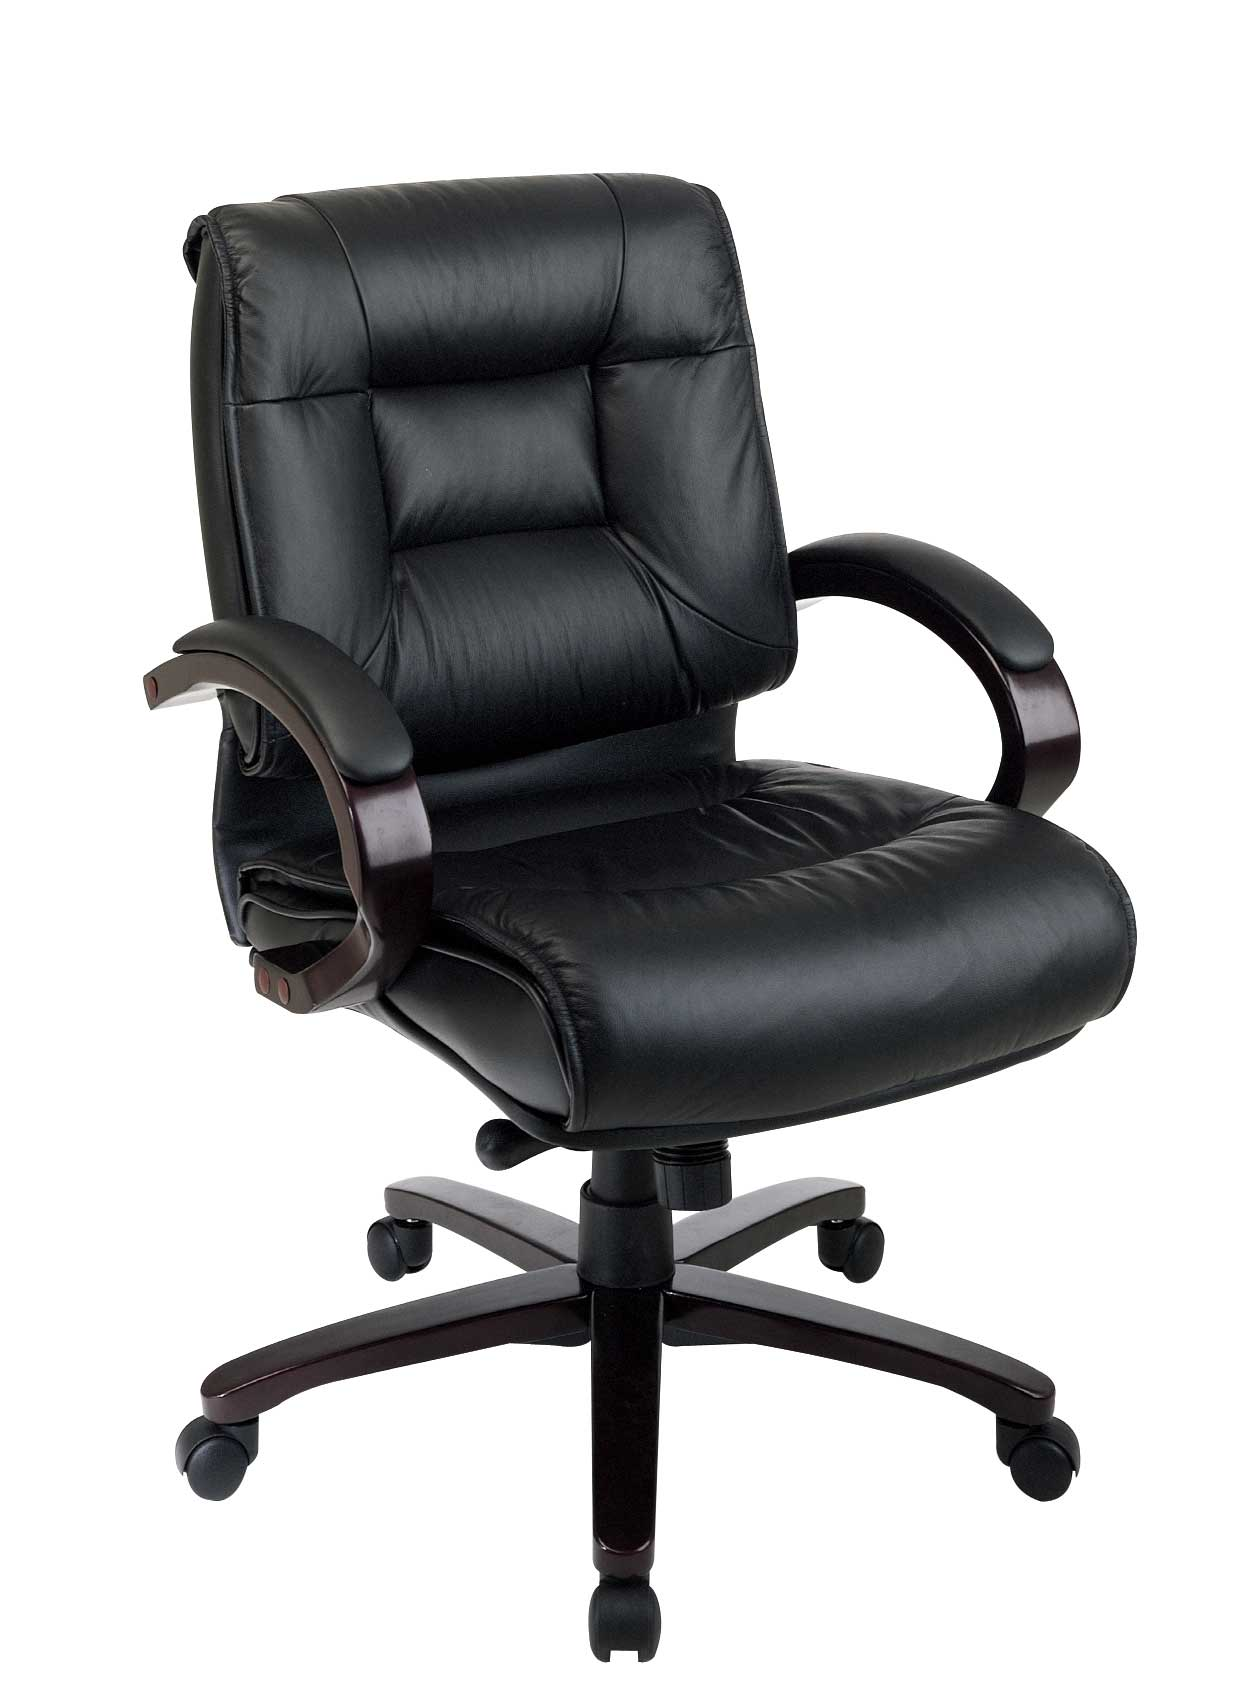 Comfy Office Chair Ergonomic Kneeling Posture Office Chair Office Furniture